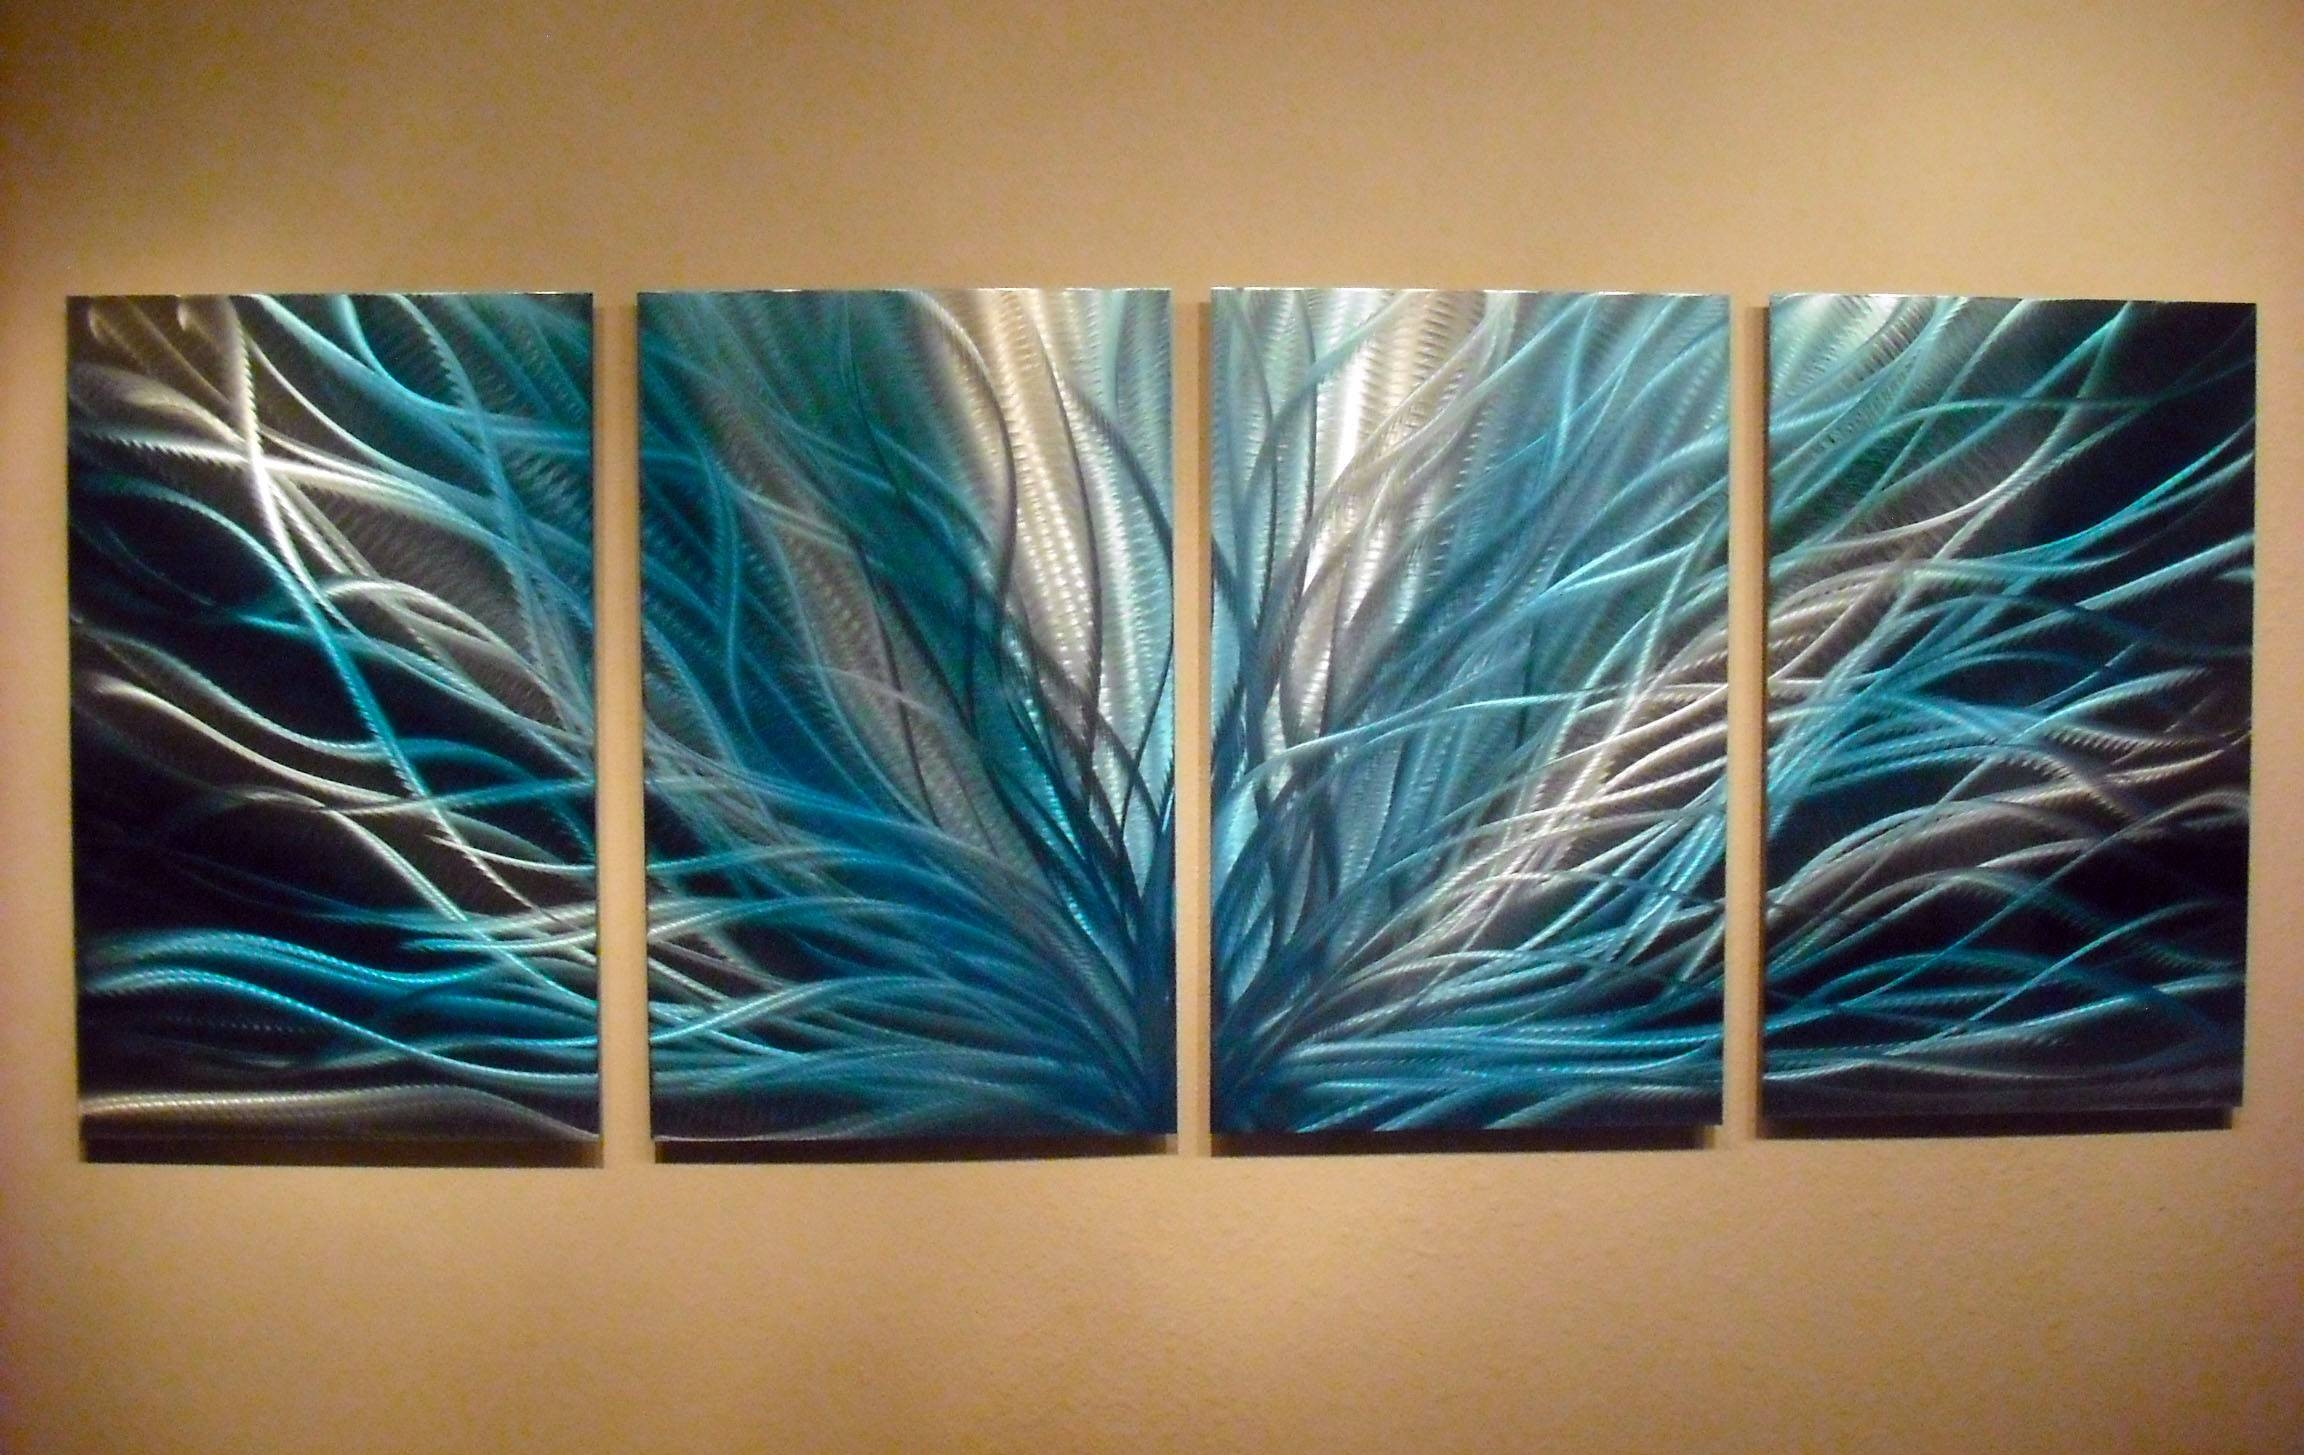 Radiance In Blues Abstract Metal Wall Art Contemporary Modern Inside Most Up To Date Contemporary Metal Wall Art Decor (View 9 of 20)